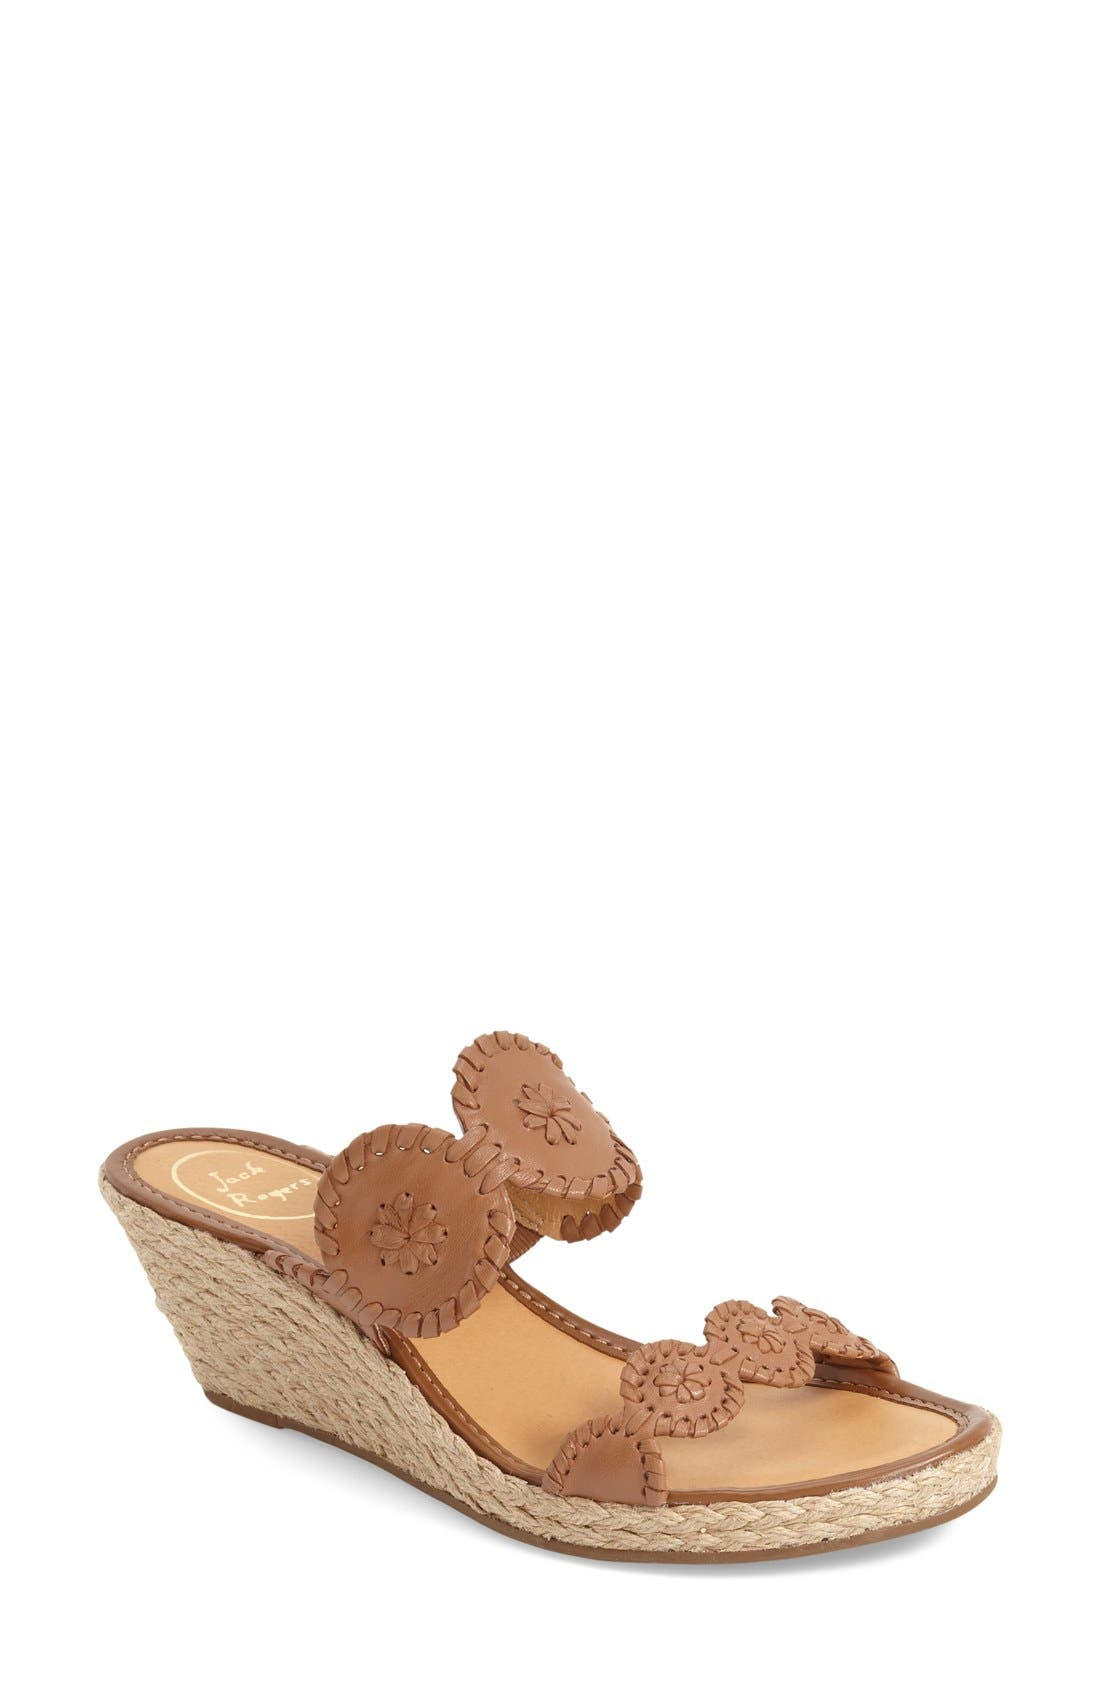 Alternate Image 1 Selected - Jack Rogers 'Shelby' Whipstitched Wedge Sandal (Women)